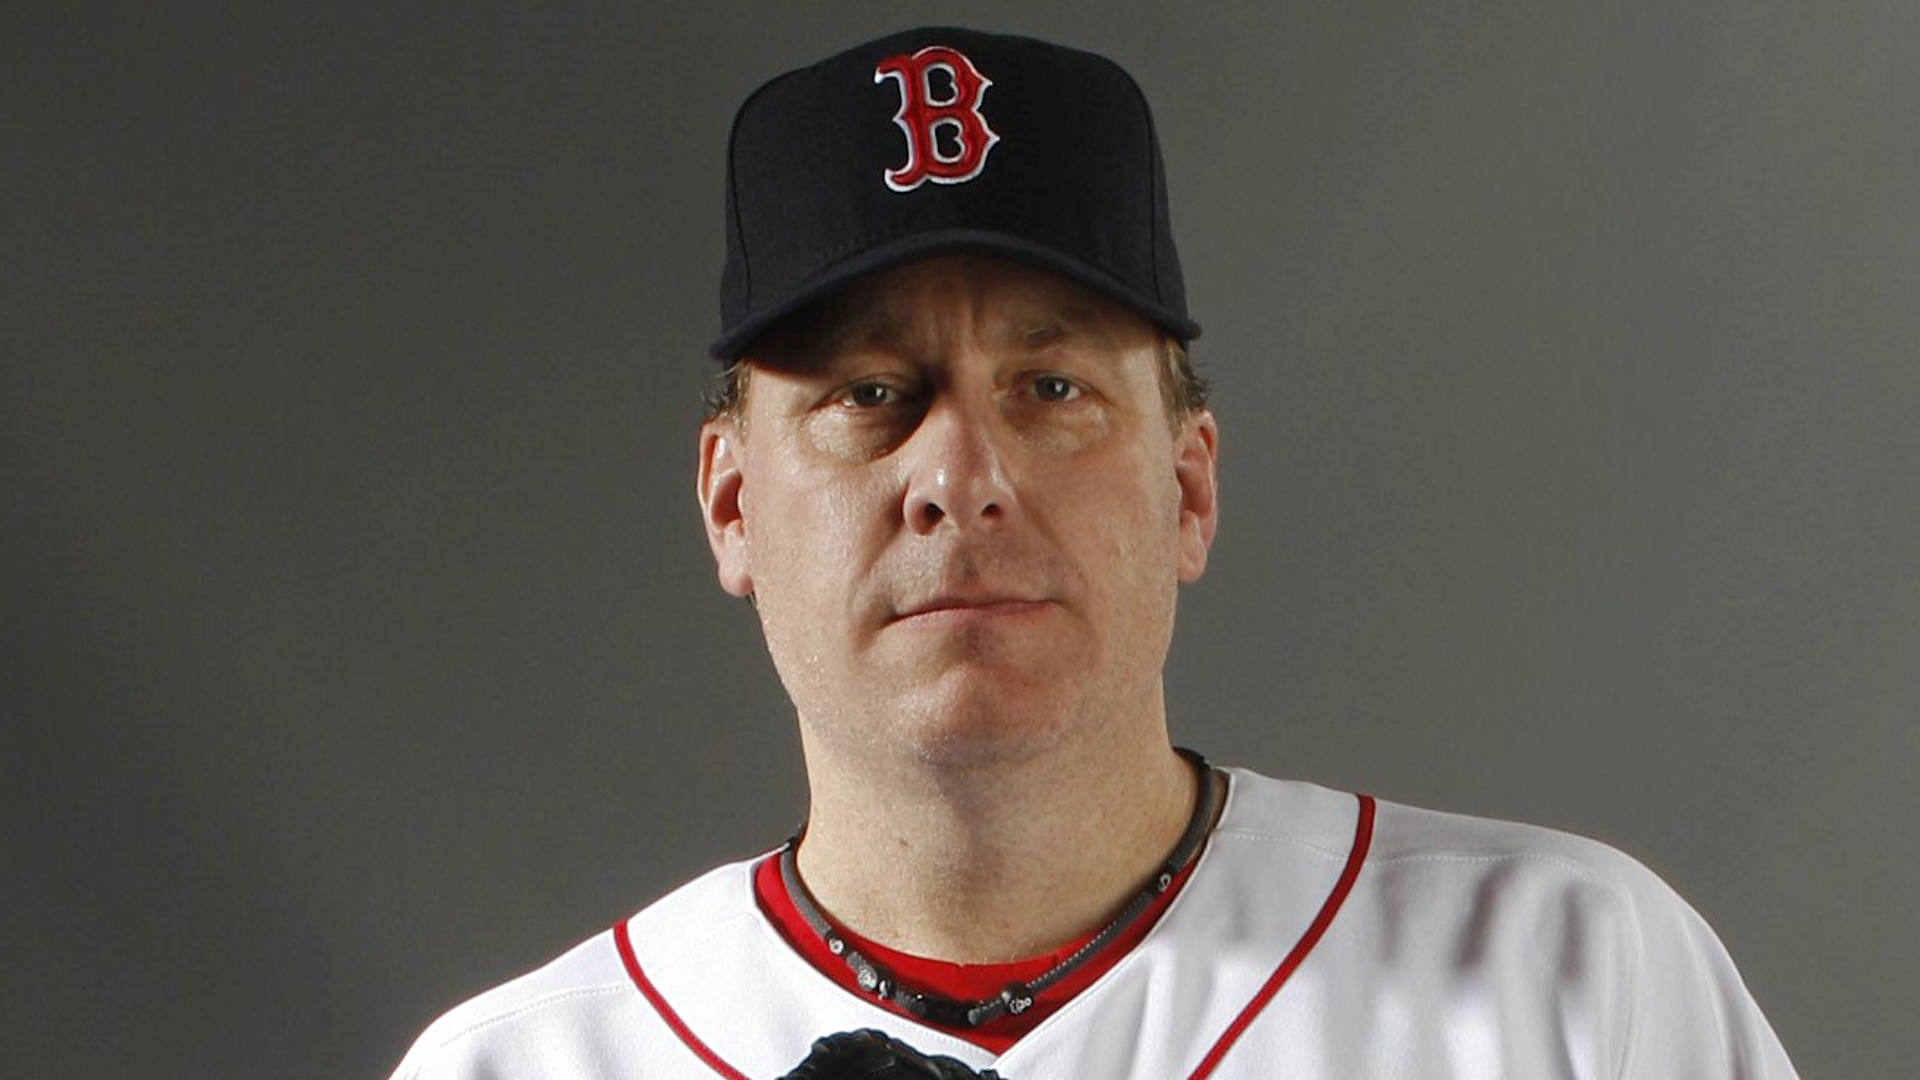 Curt-Schilling-FTR-Getty.jpg